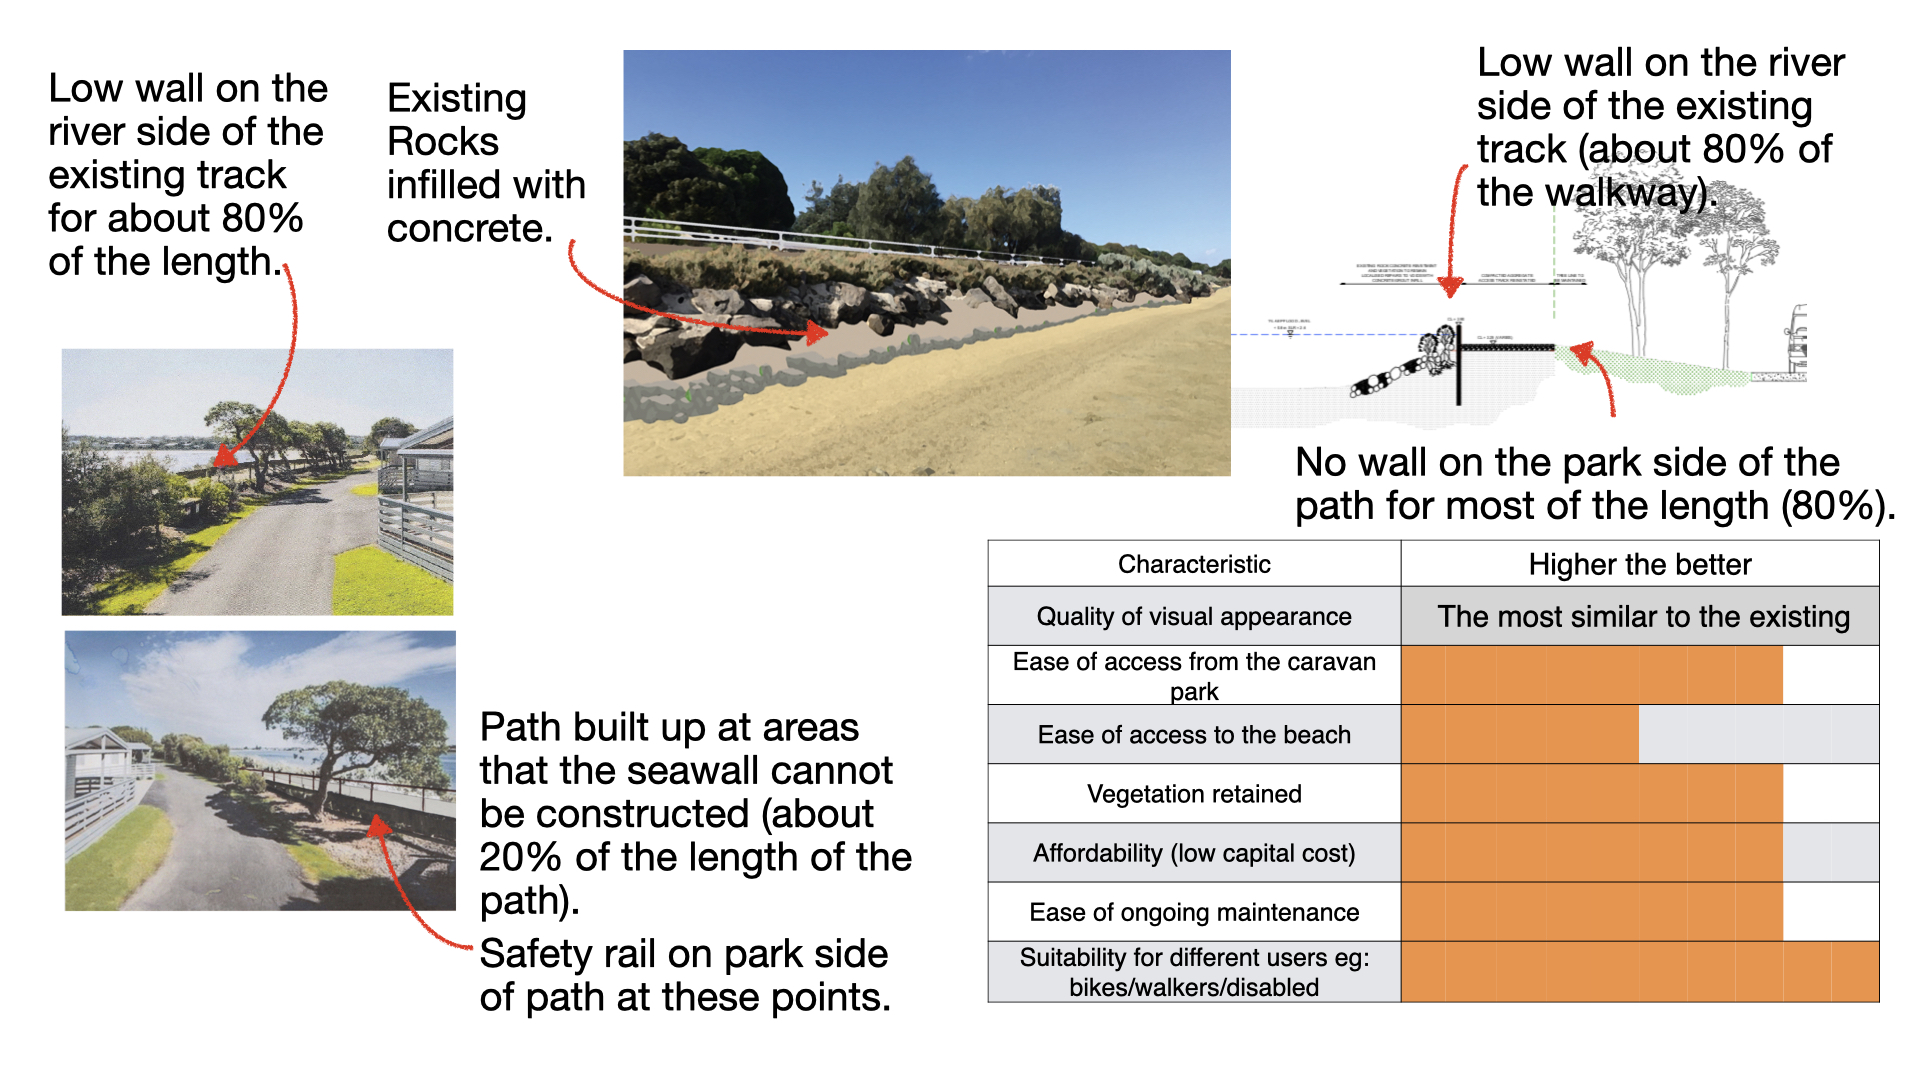 This option shows how the revetment could be repaired with more rocks and concrete infil. The increased height would be achieved through a new sea wall of between 700mm to 1000mm on the river side of the existing path way.